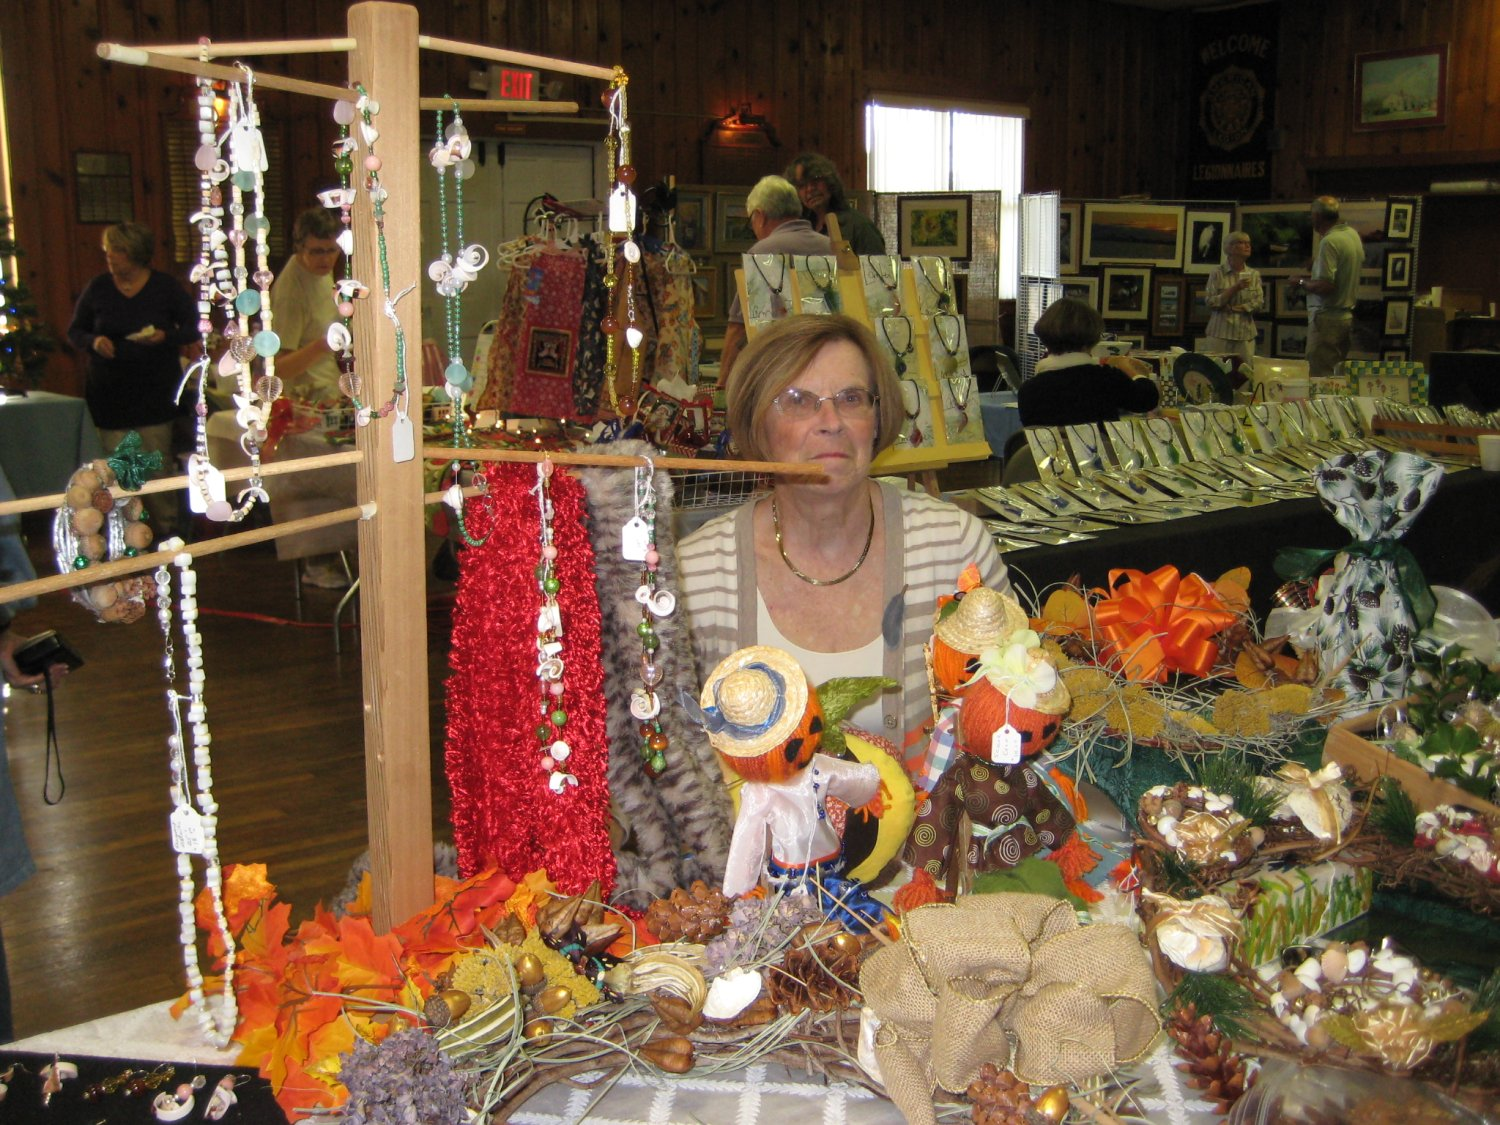 Julie Tompkins exhibited oyster and okra angels, Christmas balls, shell ornaments, and more.